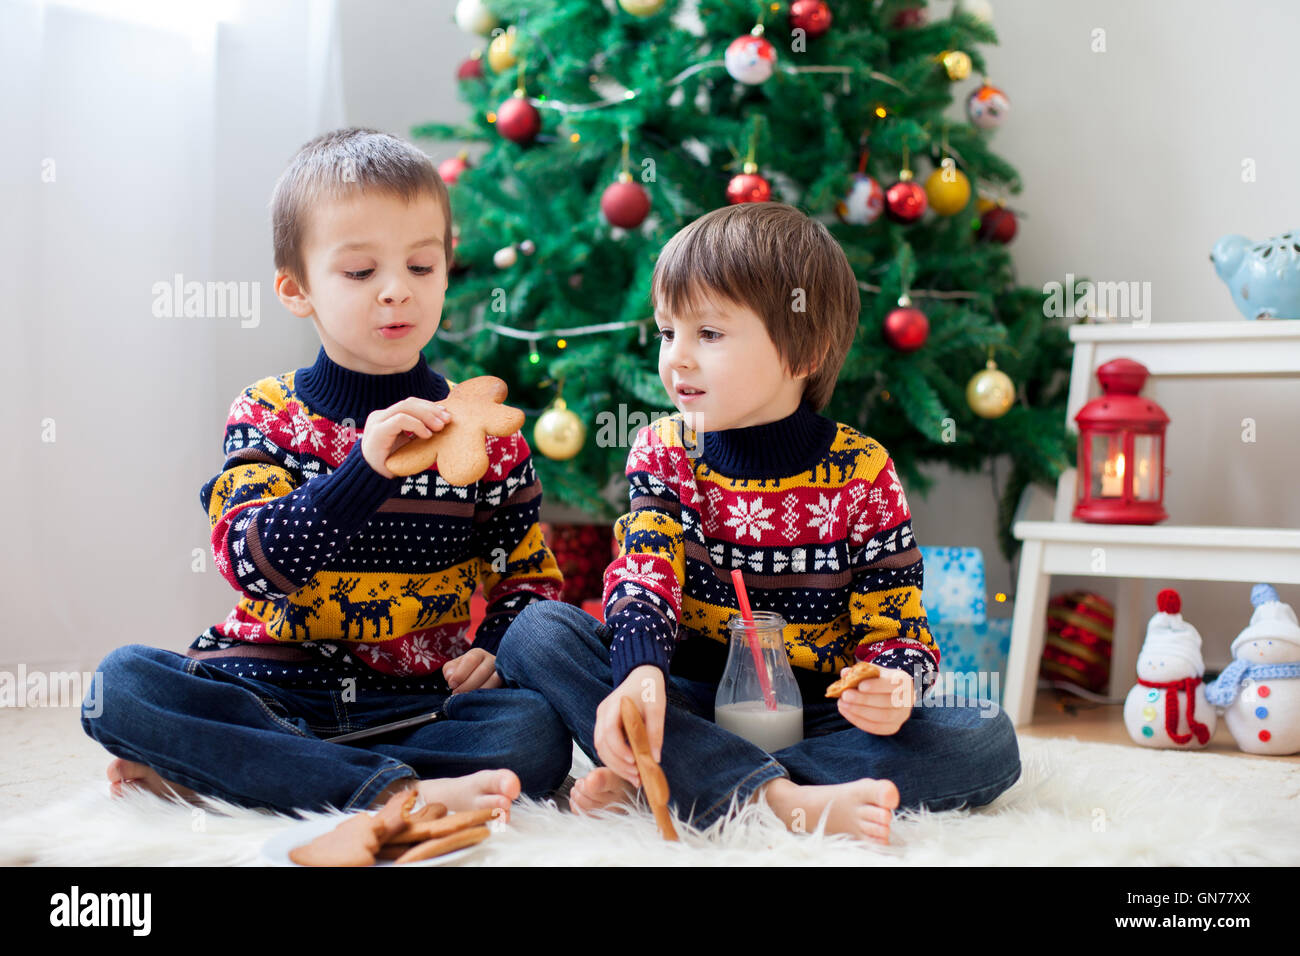 Two adorable children, boy brothers, eating cookies and drinking milk at home, Christmas decoration behind then, - Stock Image